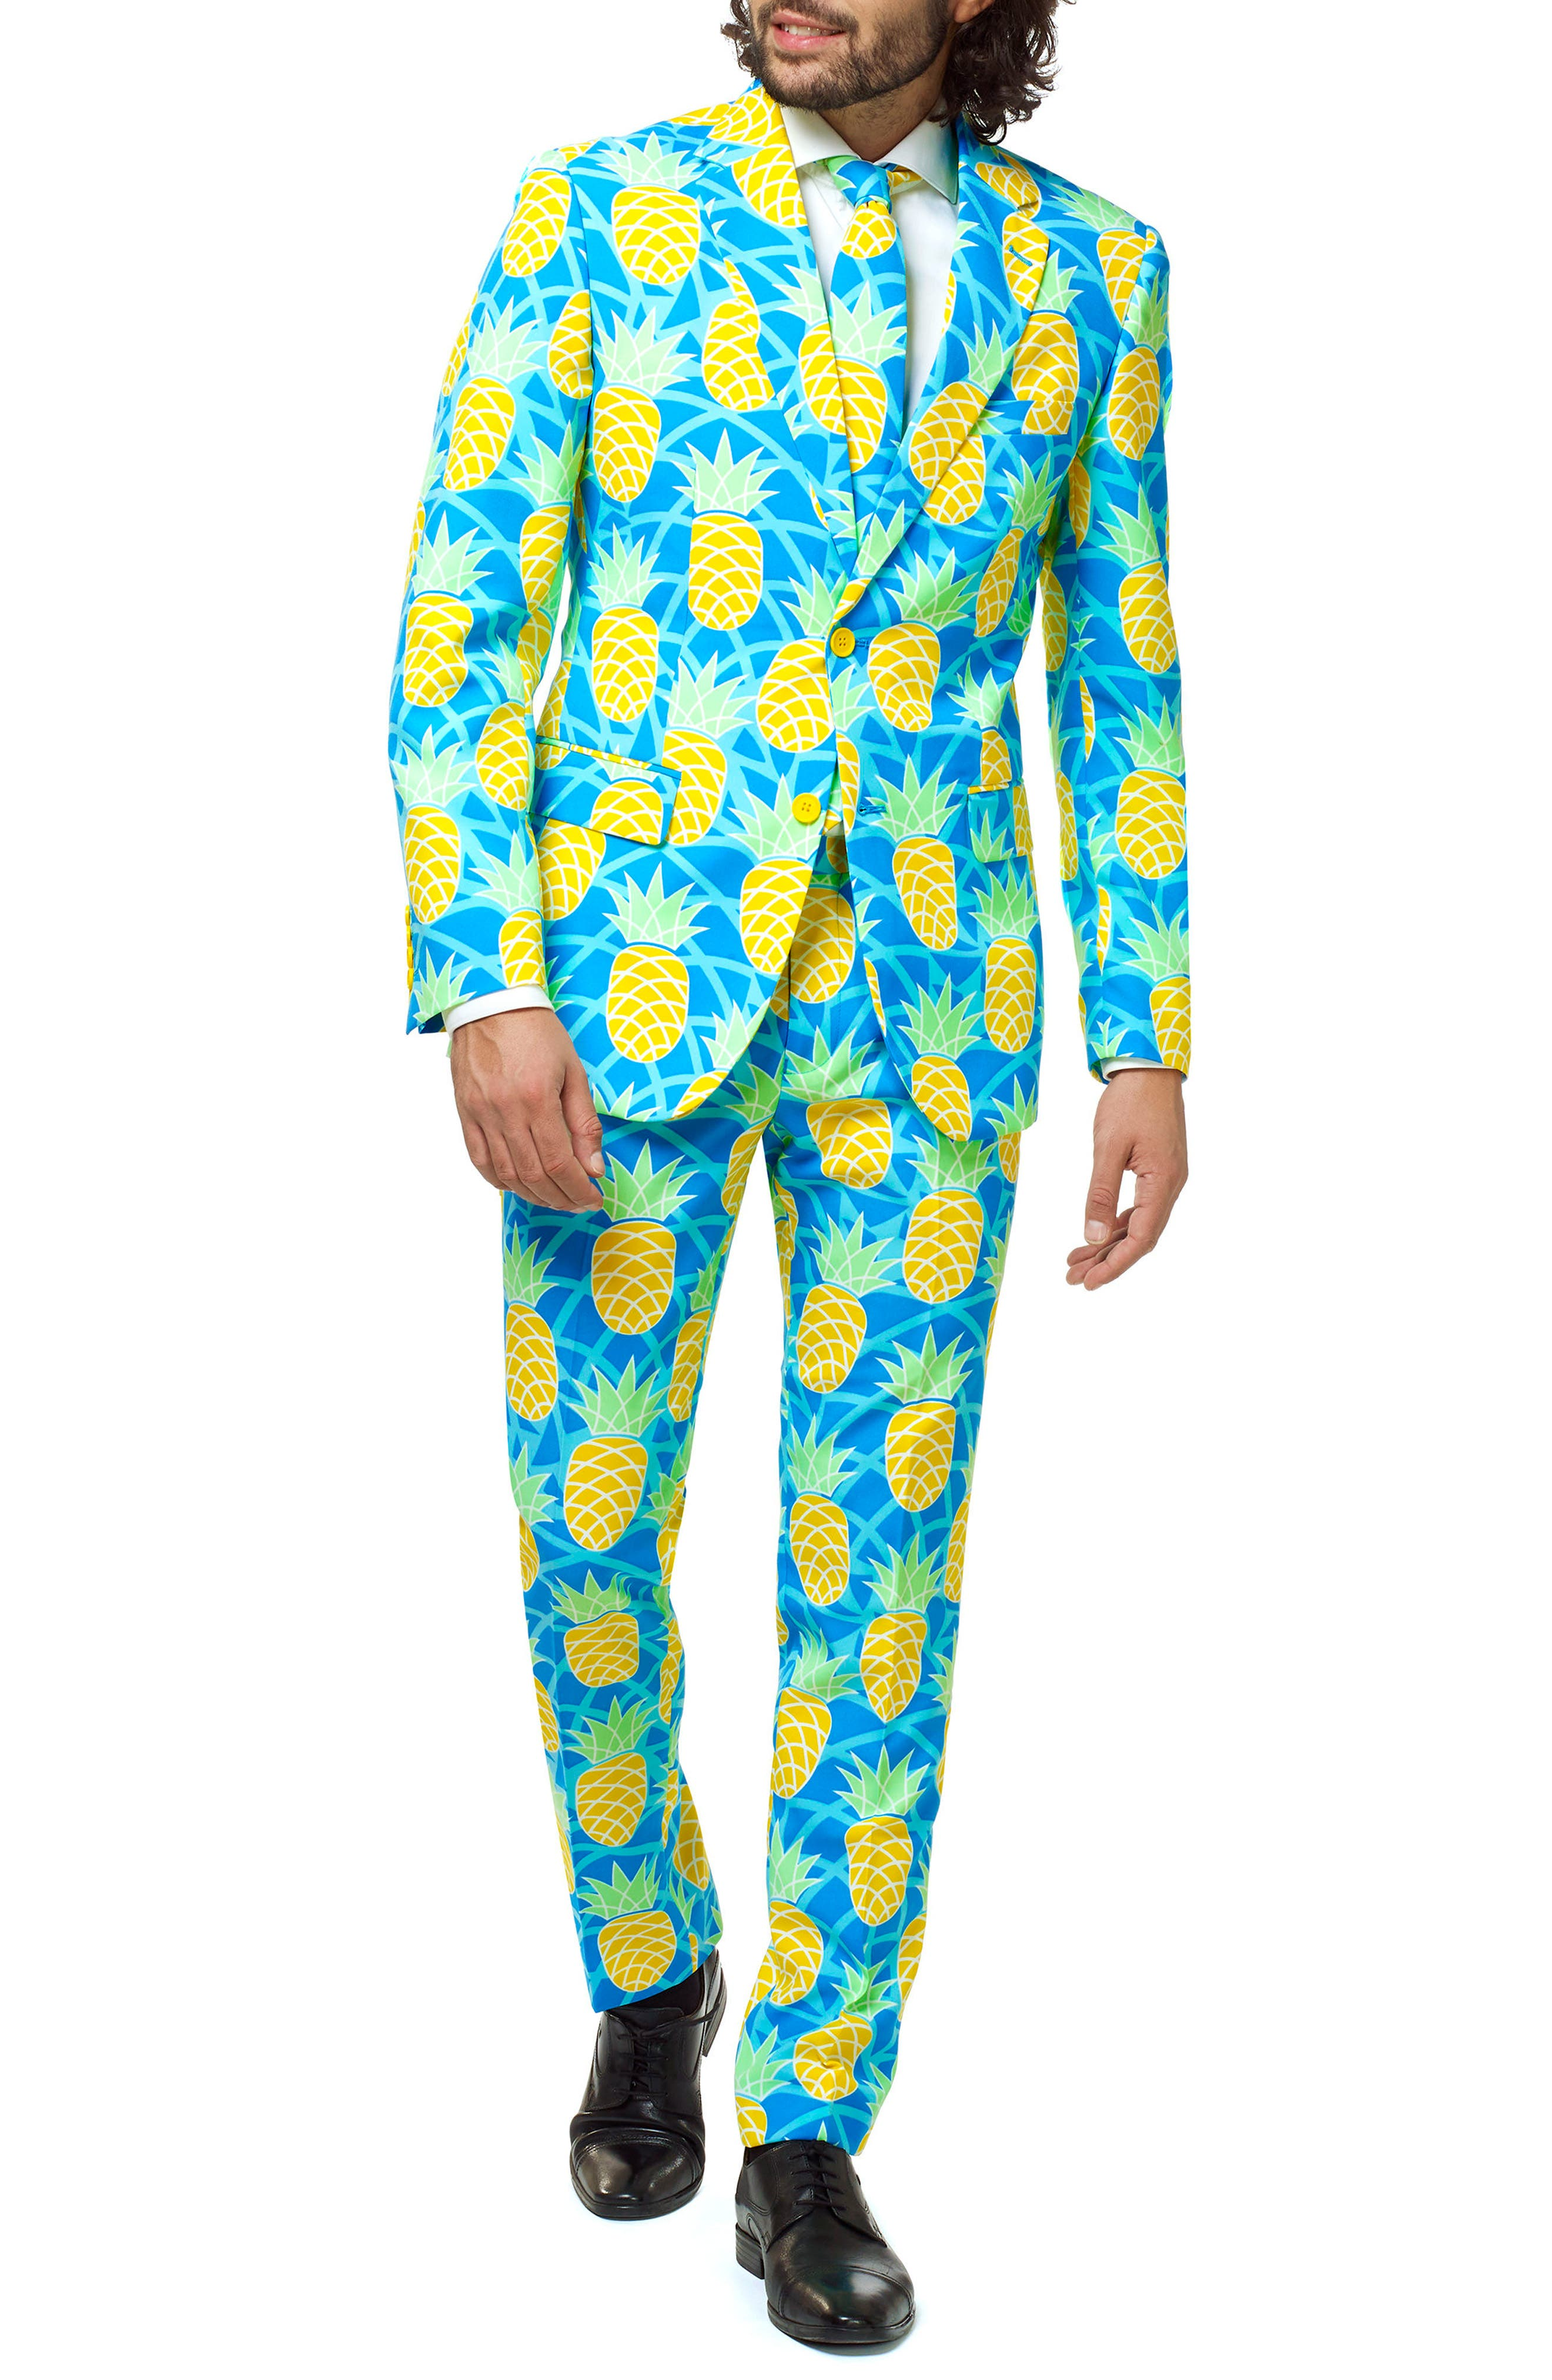 Summer Shineapple Trim Fit Two-Piece Suit with Tie,                             Main thumbnail 1, color,                             400